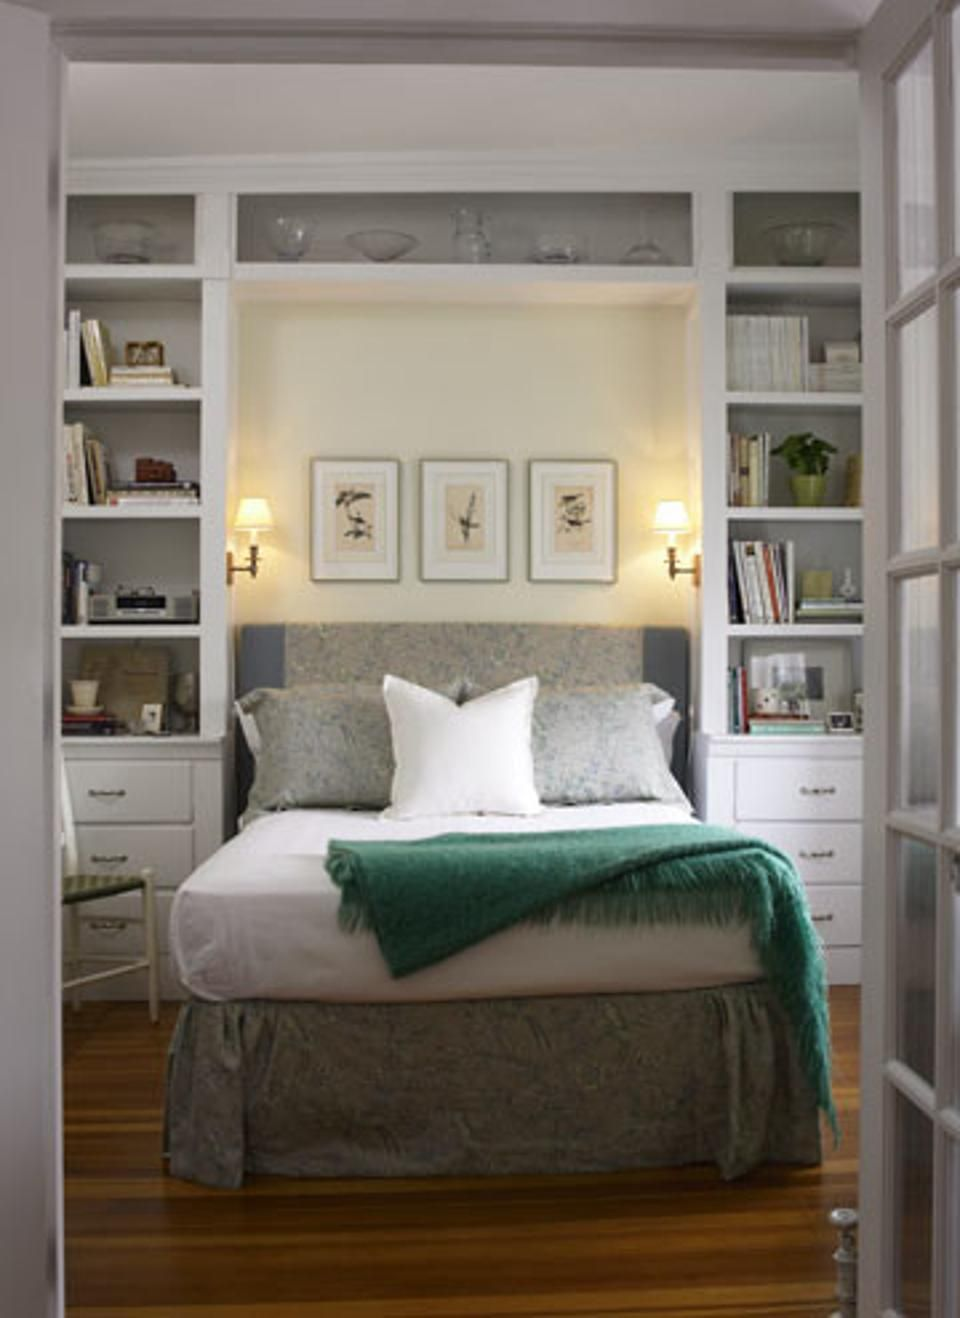 10 tips to make a small bedroom look great - Ideas For Decorating Small Bedroom